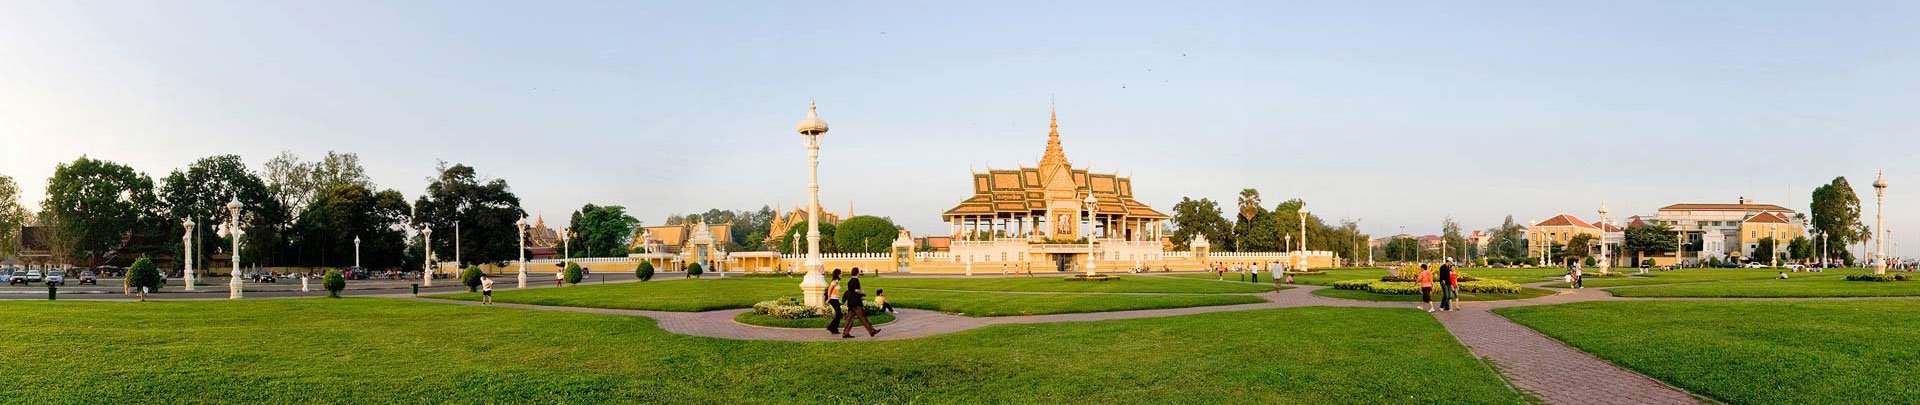 <i>Welcome to</i><p>Cambodia</p><i>Kingdom of Wonder</i>